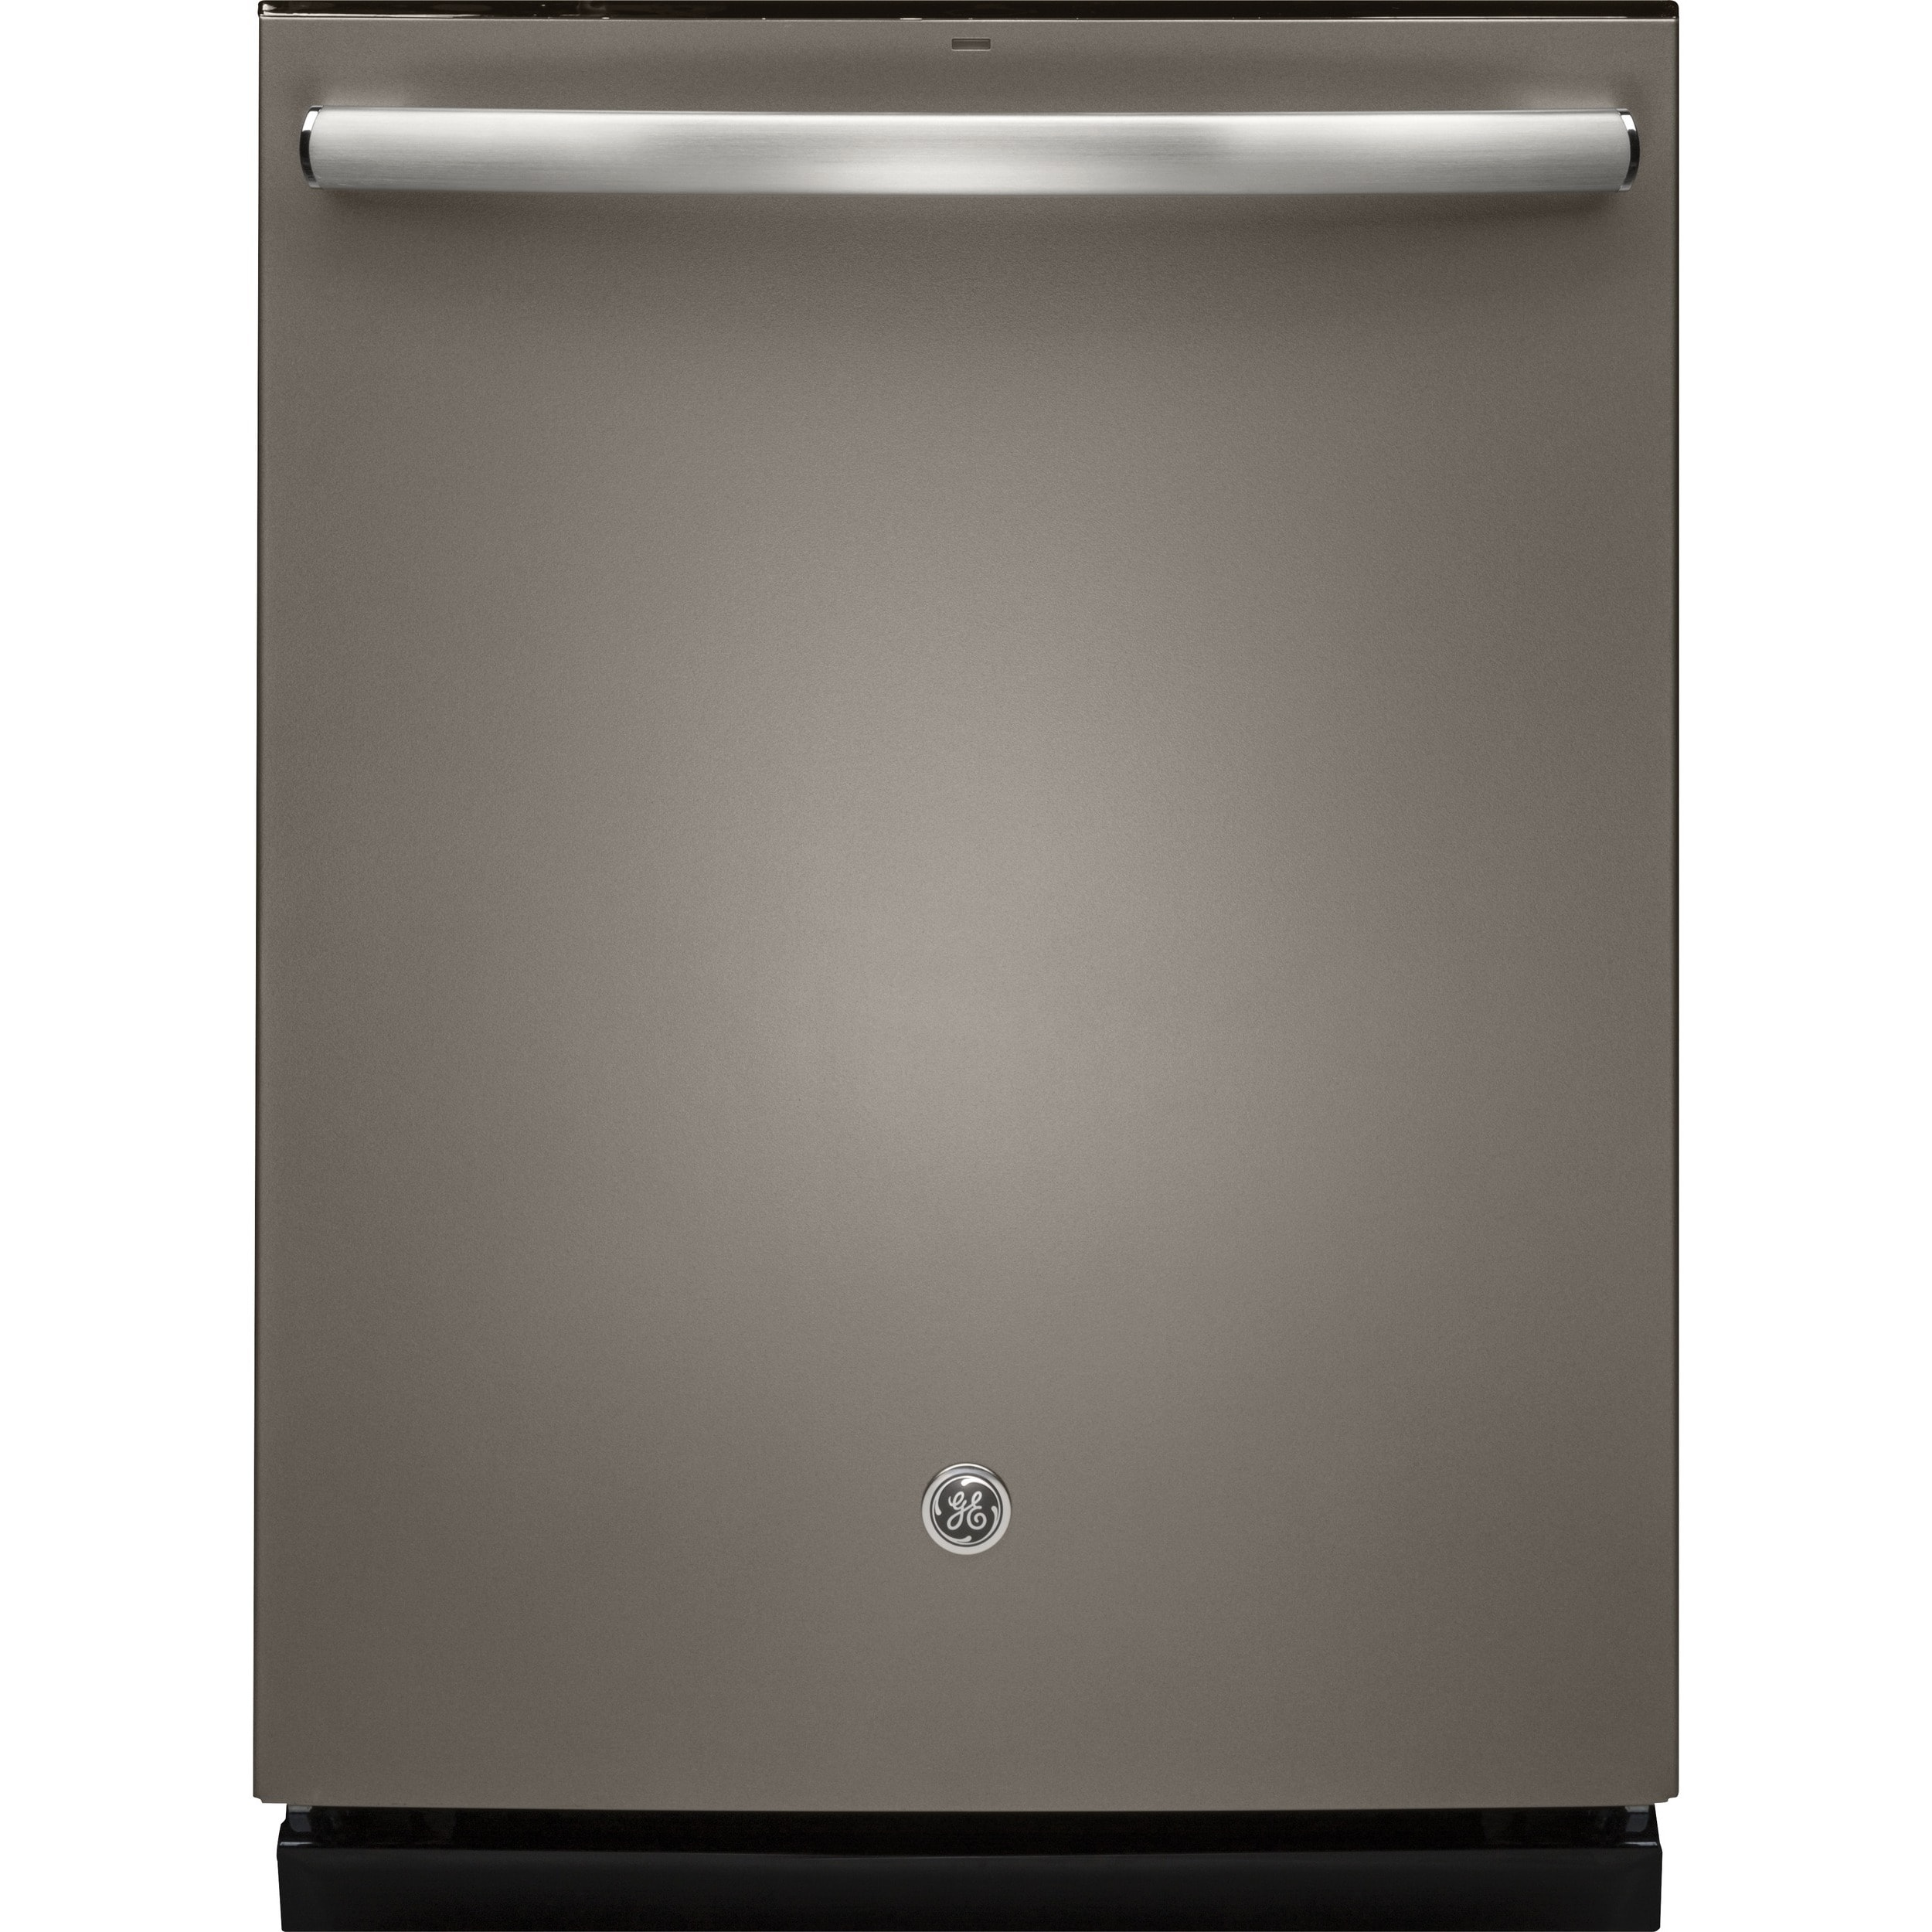 GE Fully Integrated Dishwasher (Silver) (Plastic)